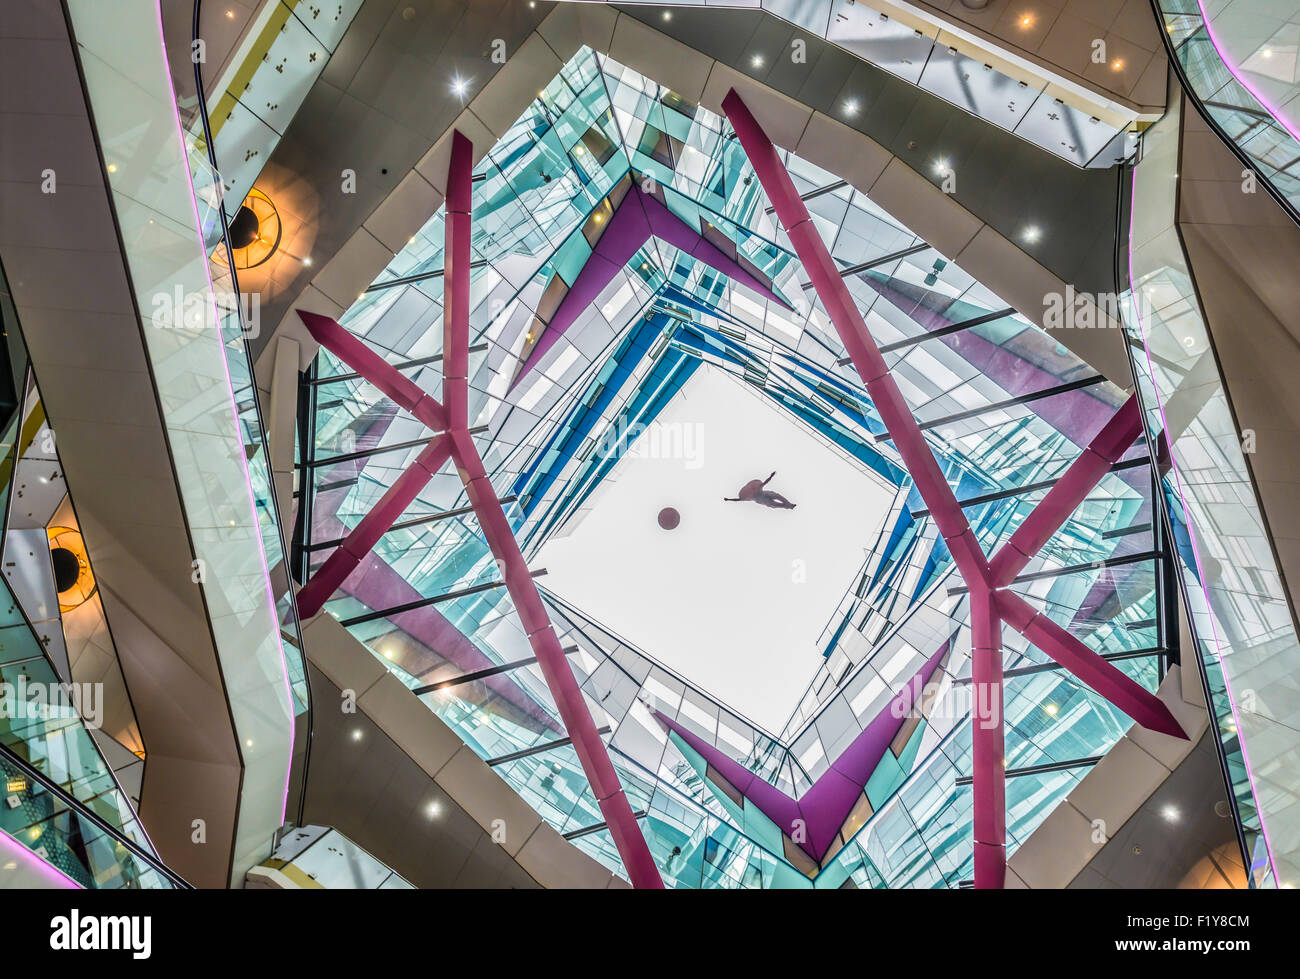 The cube interiors birmingham stock photo royalty free image 87265828 alamy for Cube interiors